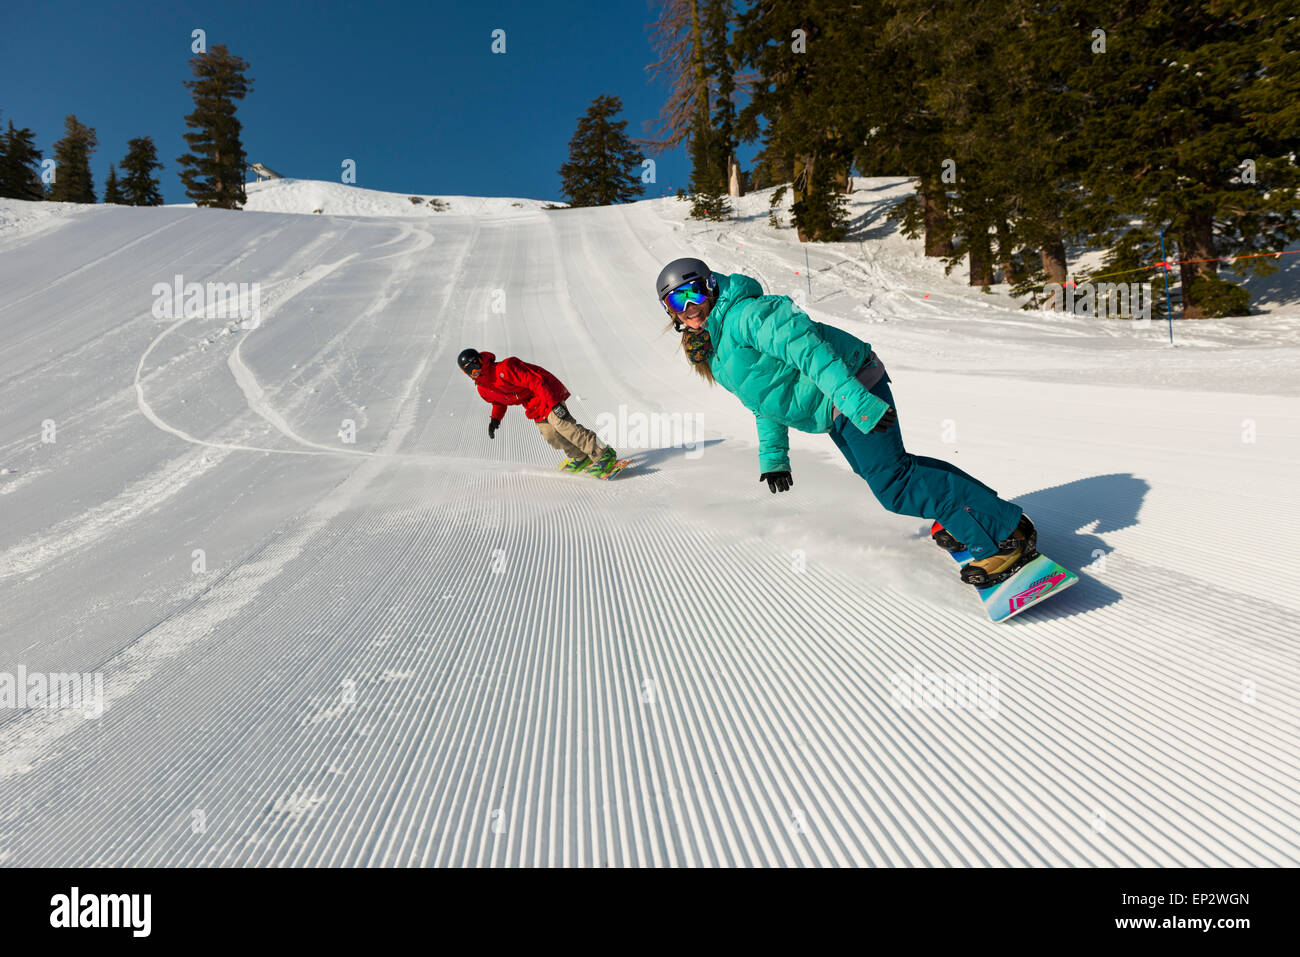 A pair of snowboarders ride perfectly groomed runs on a bluebird spring day at squaw valley, lake tahoe - Stock Image